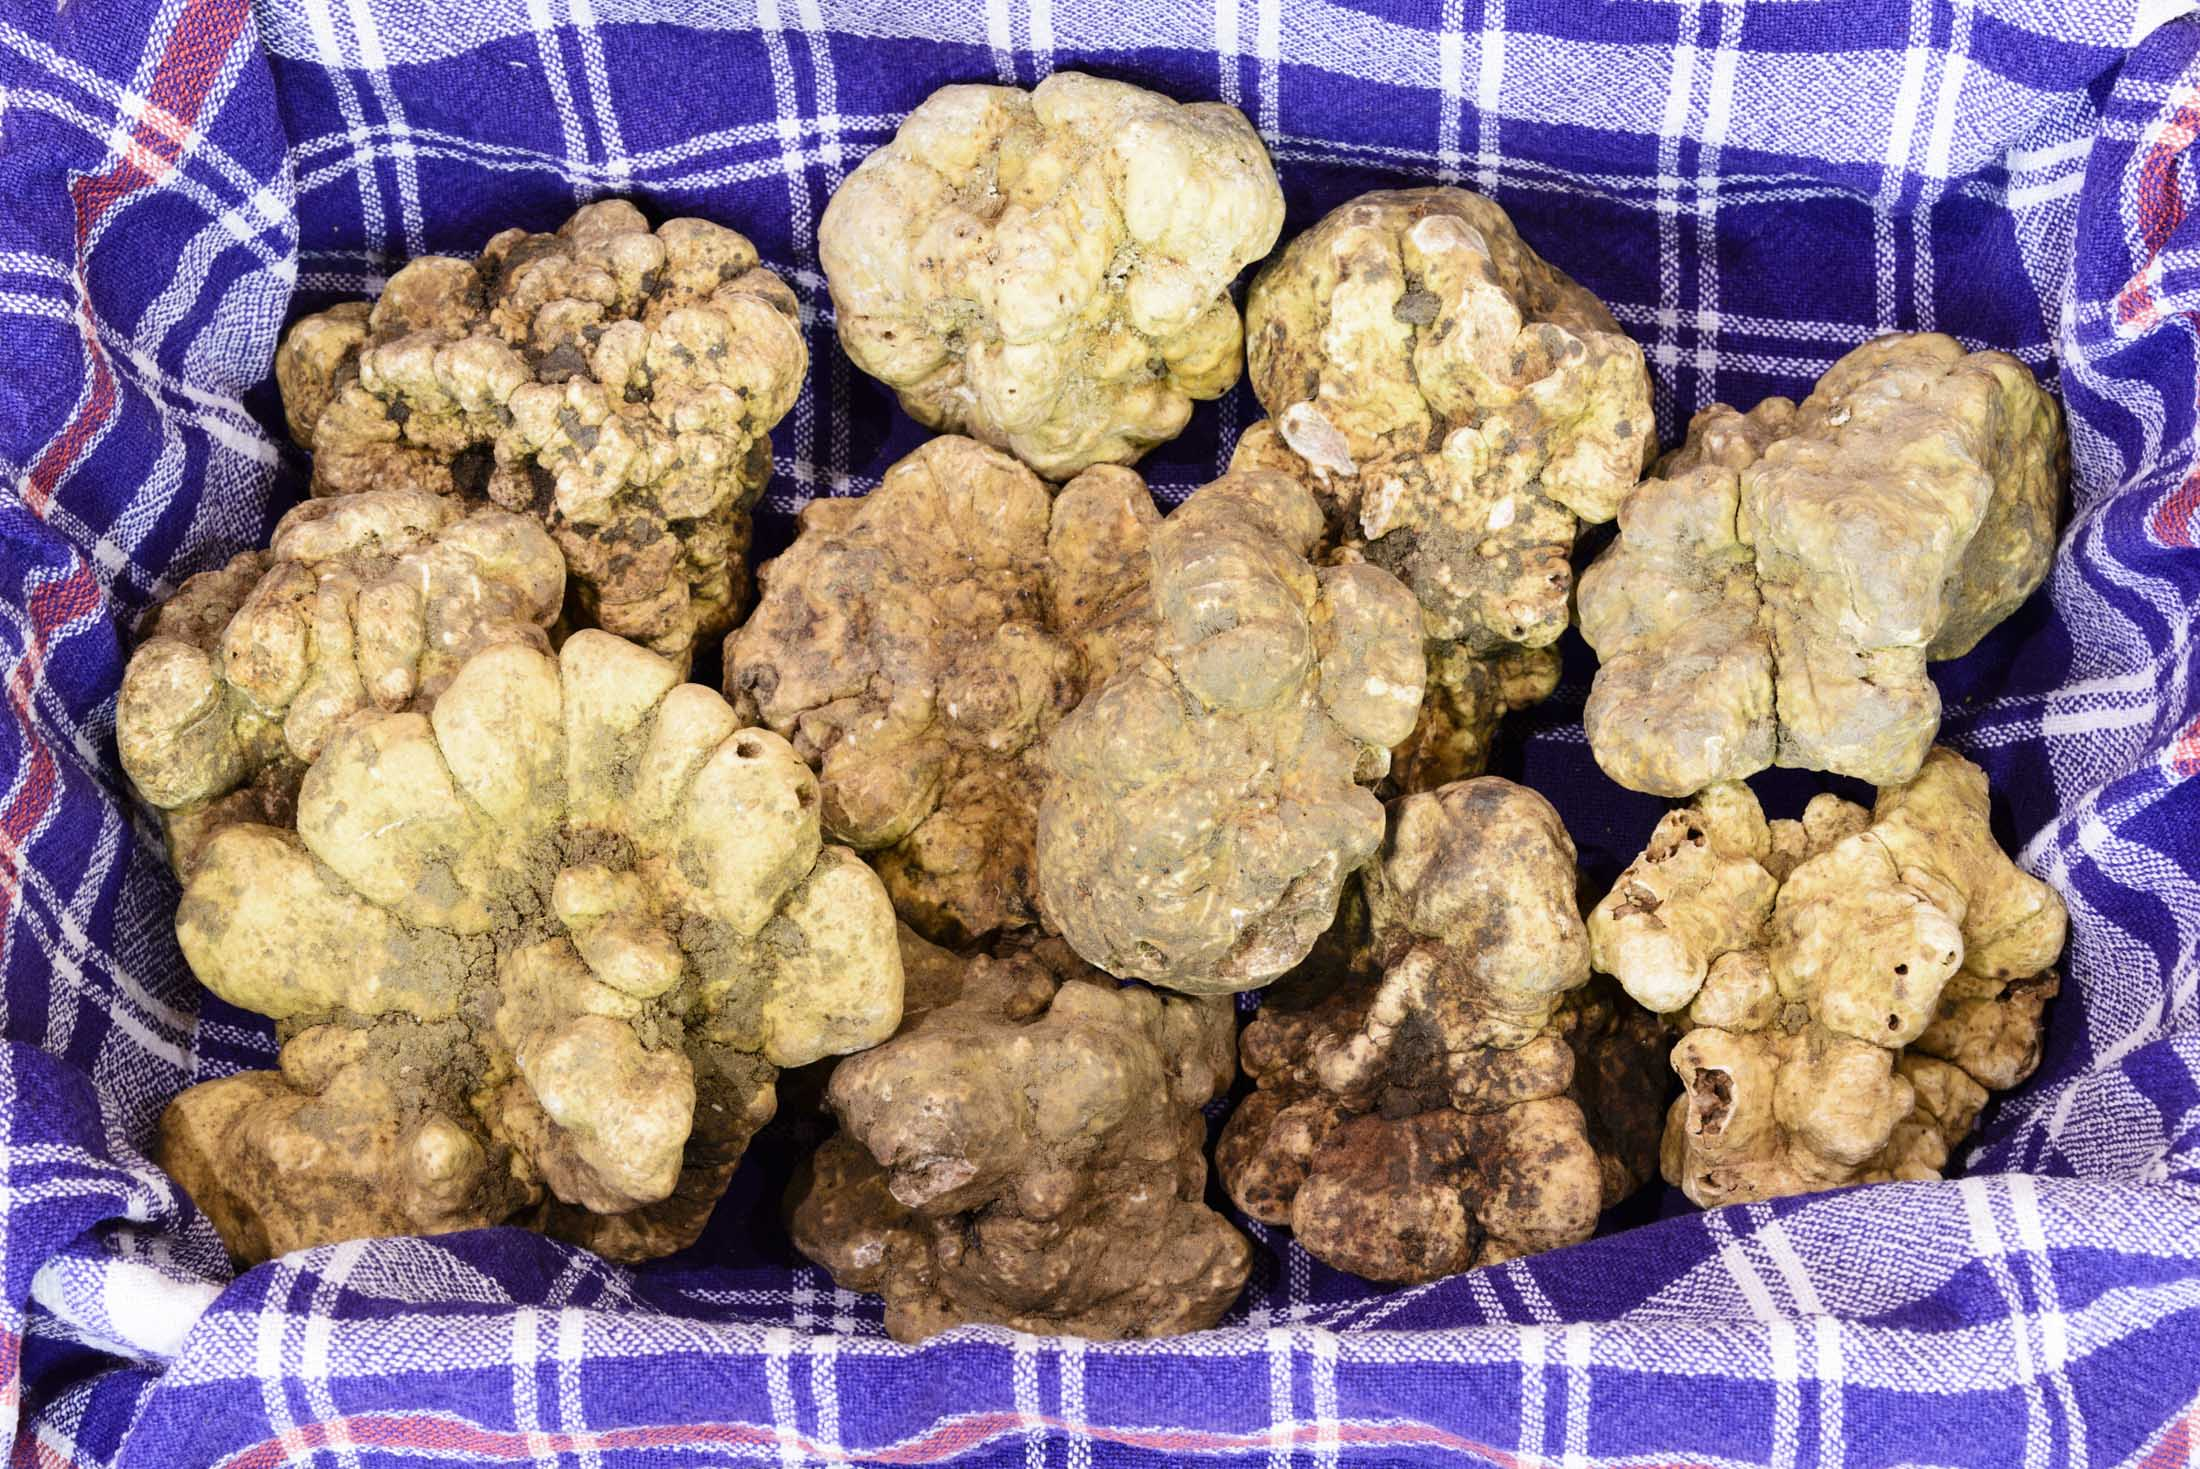 White truffles from Piedmont, Italy